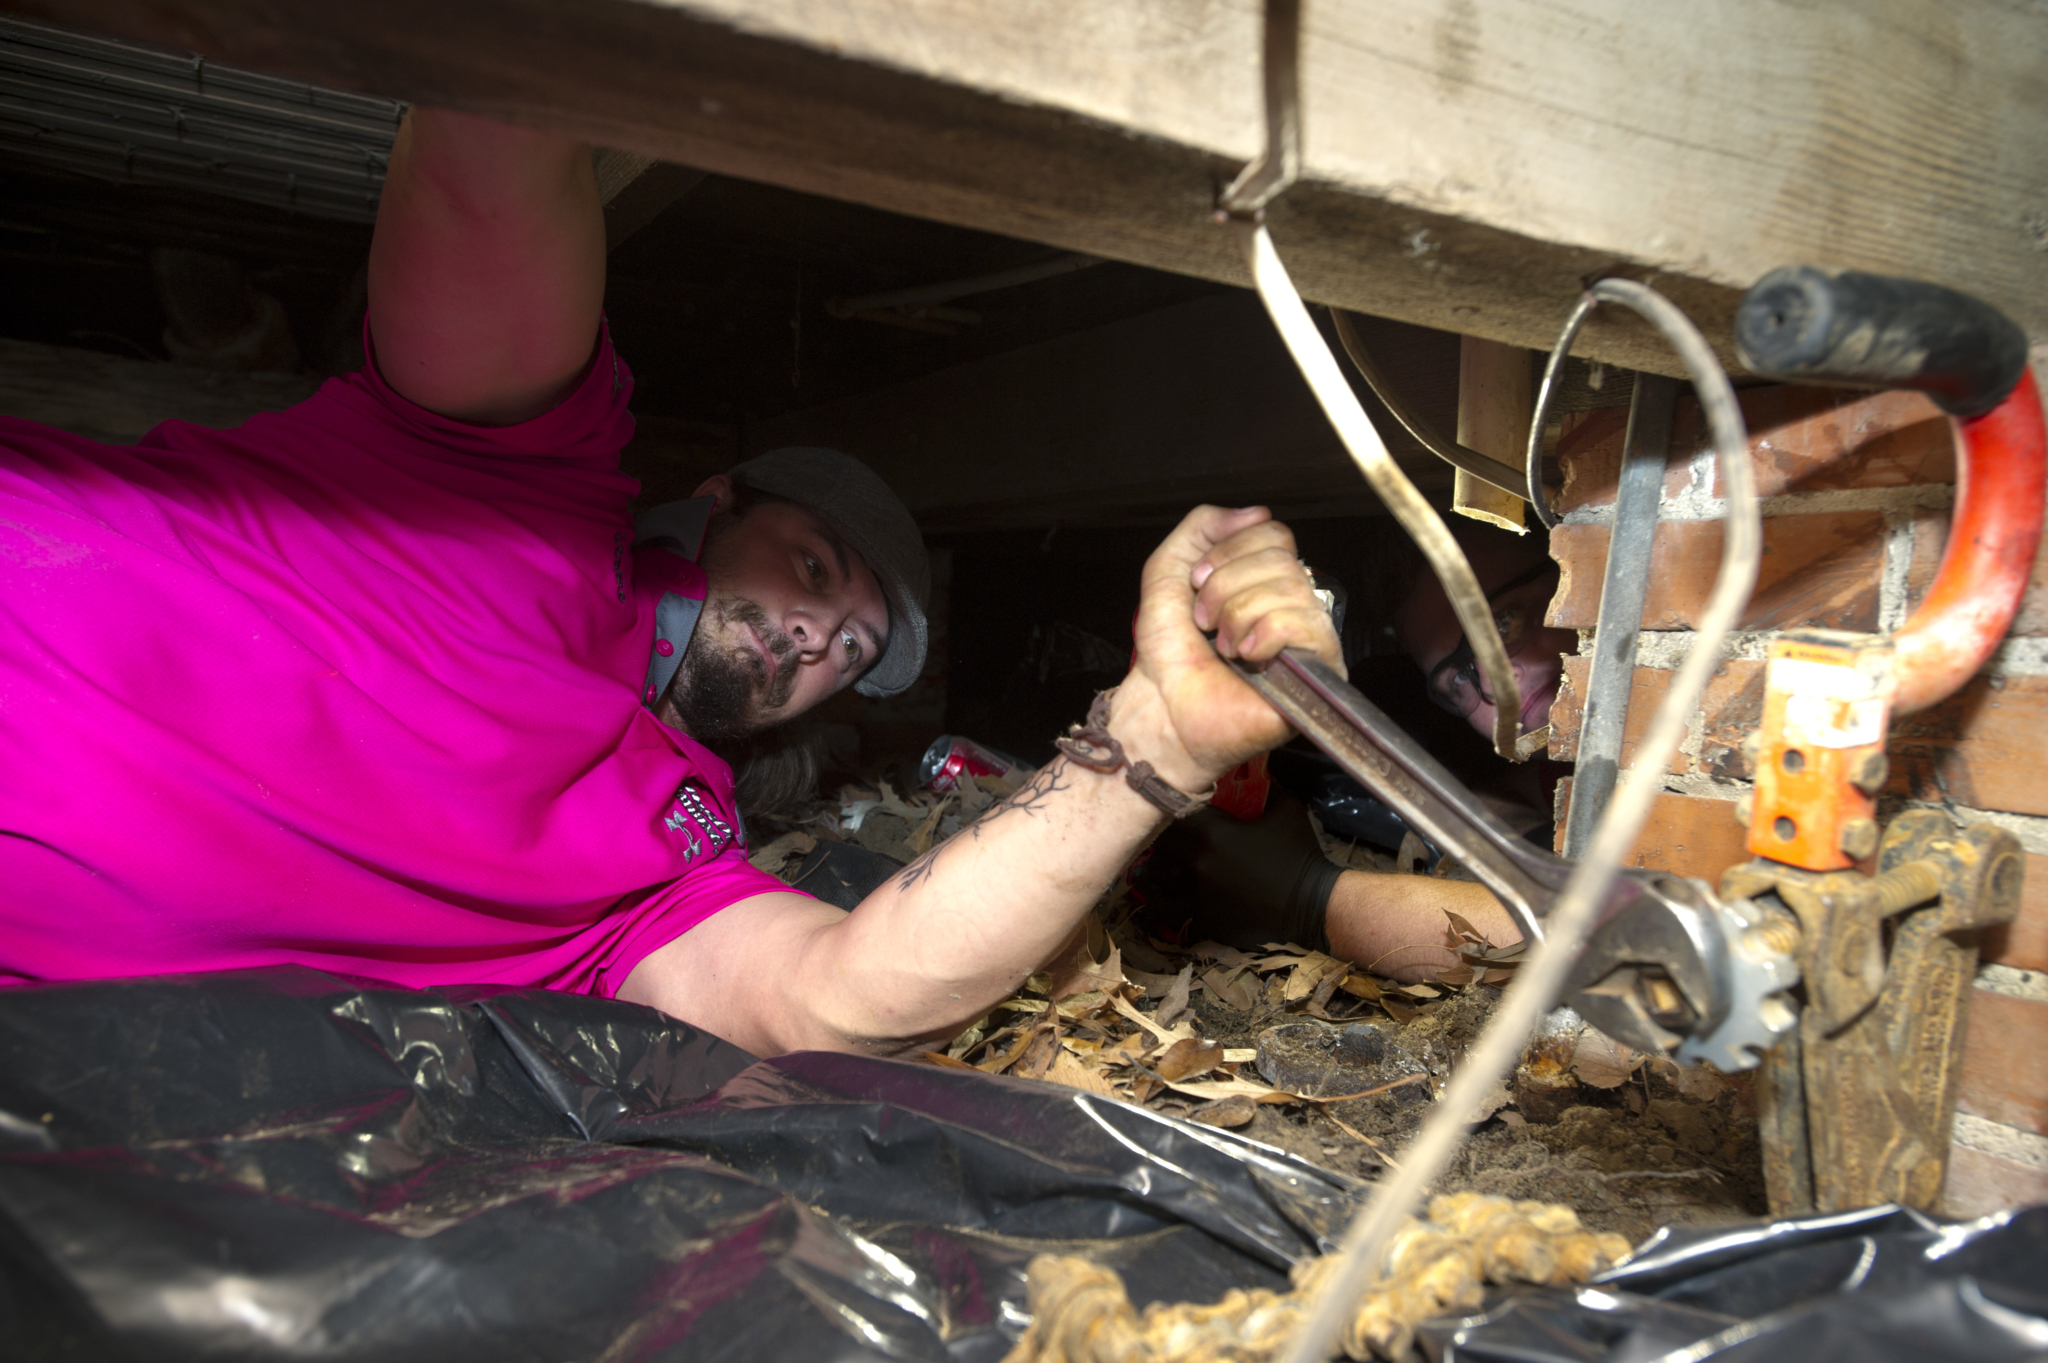 Jessie Wigley of Parsons Plumbing, Heating & Cooling in Ball, Louisiana, featured in the July issue, works under a house on a job.